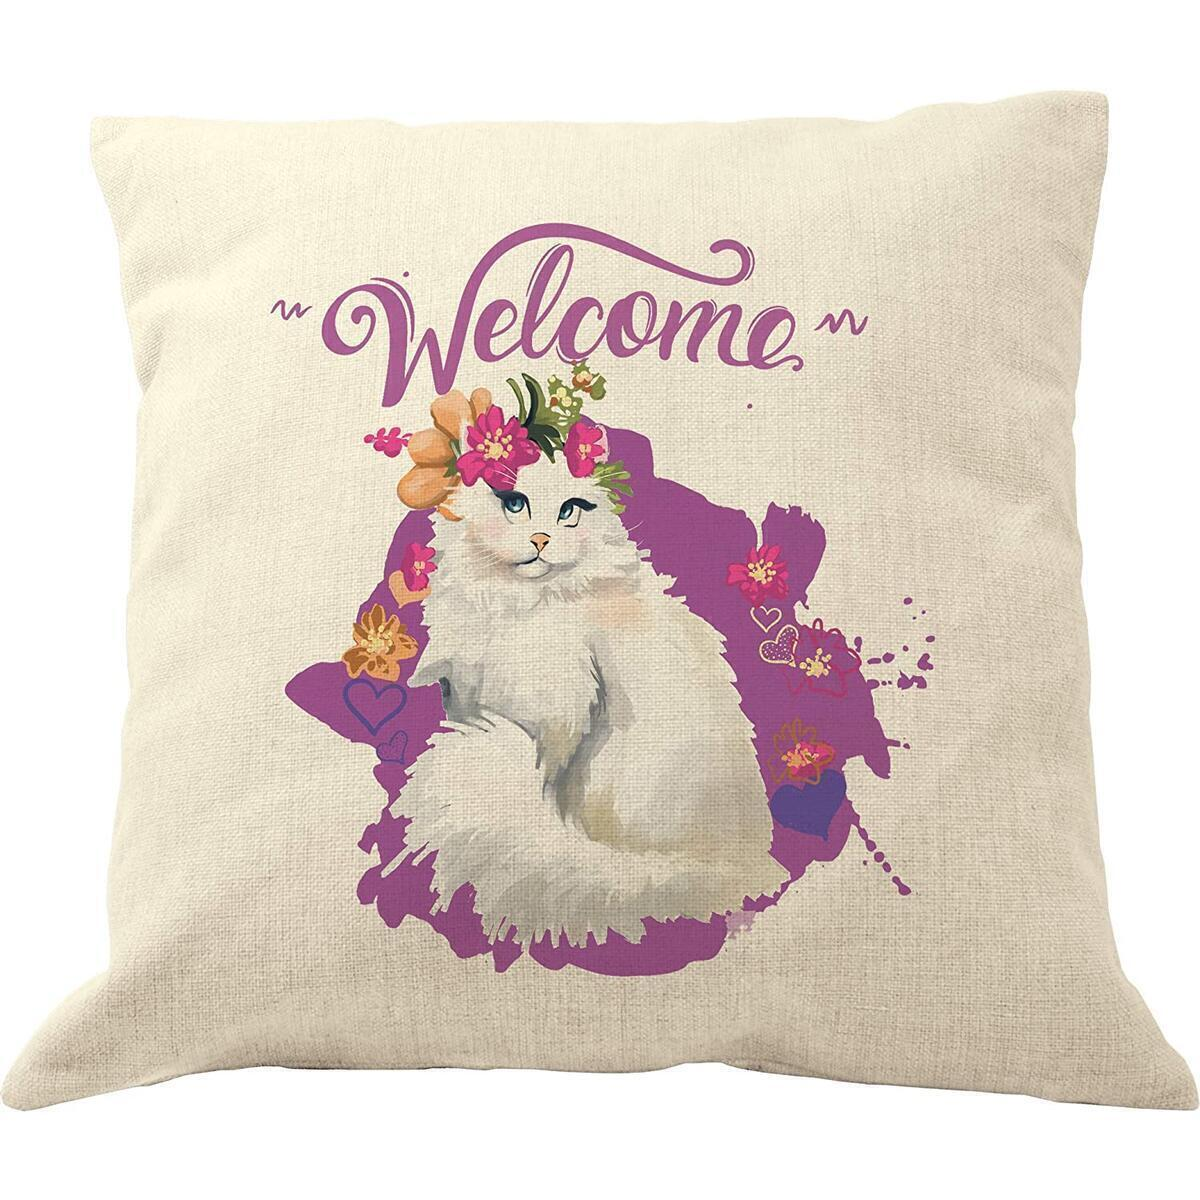 """DrupsCo - 18""""x18"""" White Cat Pillow Covers, Decorative Throw Pillows for Cat Lovers Made from Cotton Linen - Kitty Pillow Covers, Cat Decor Couch Pillows Cover"""